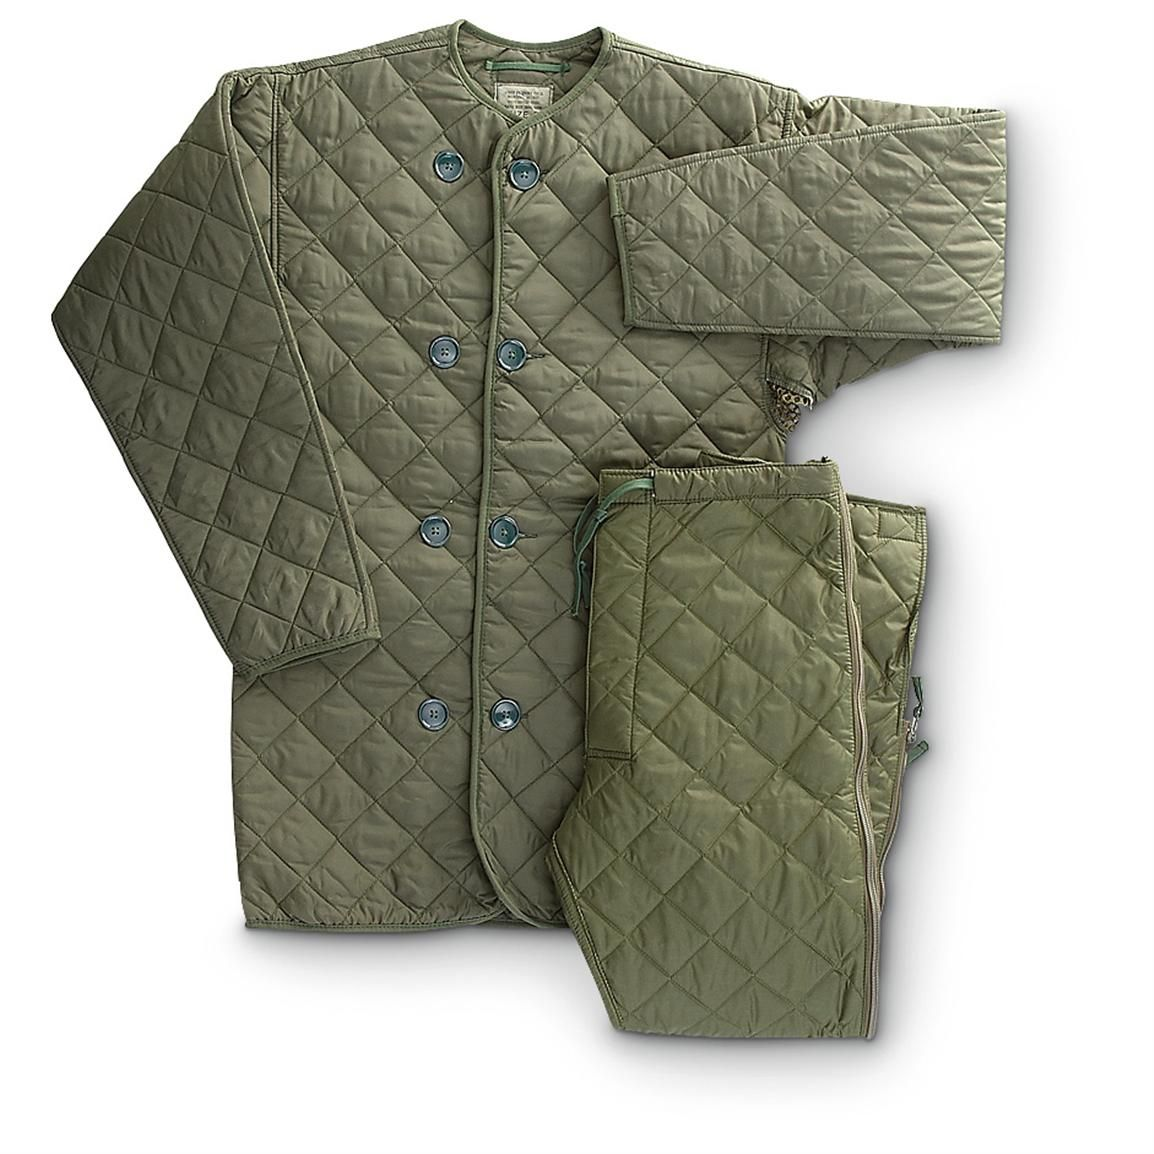 New British Military Surplus Quilted Liner Set, Olive Drab ... : quilted liner - Adamdwight.com